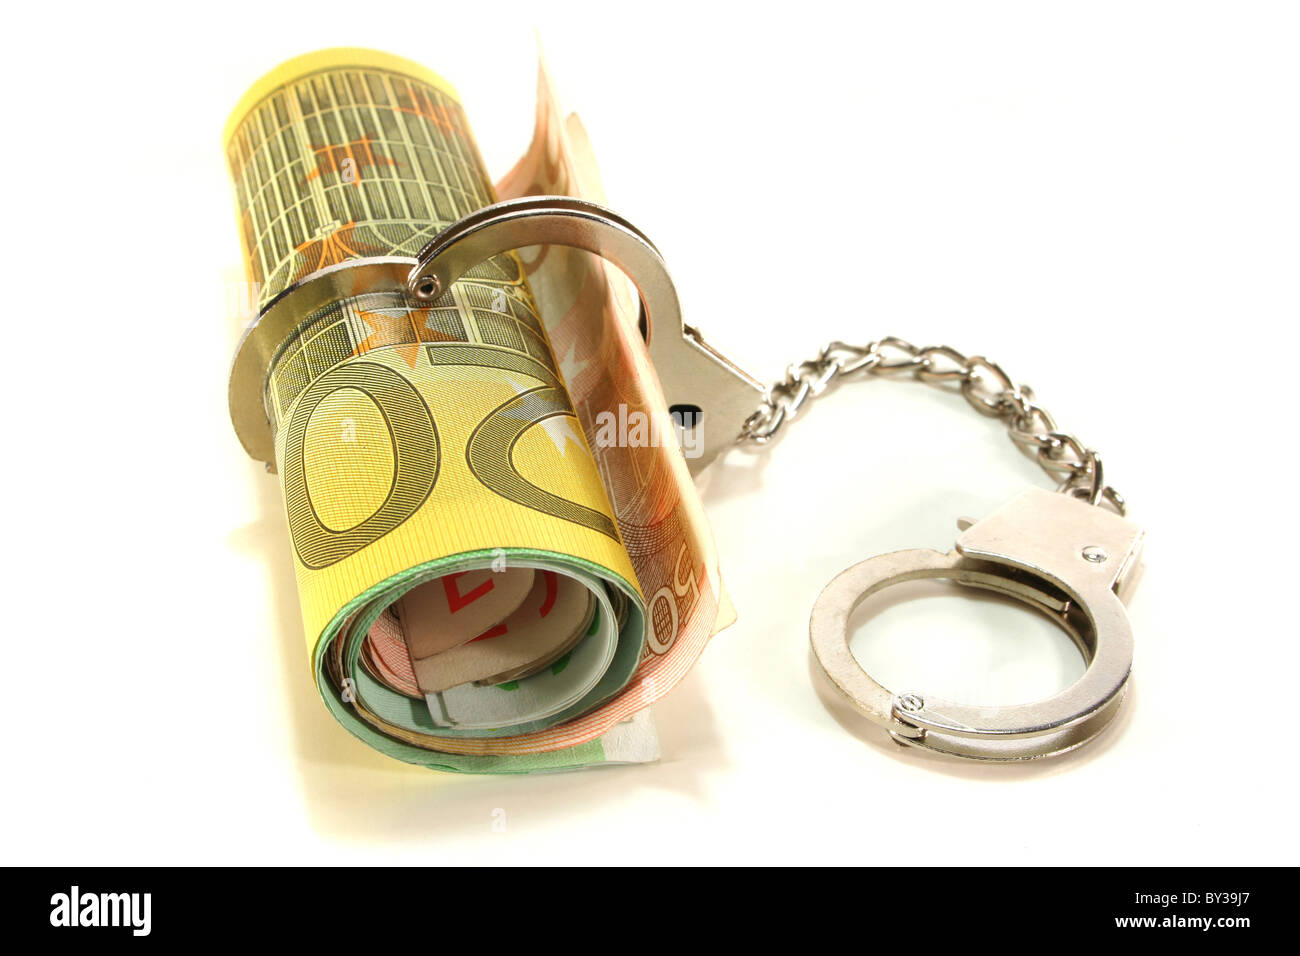 Euro notes with handcuffs on a white background - Stock Image